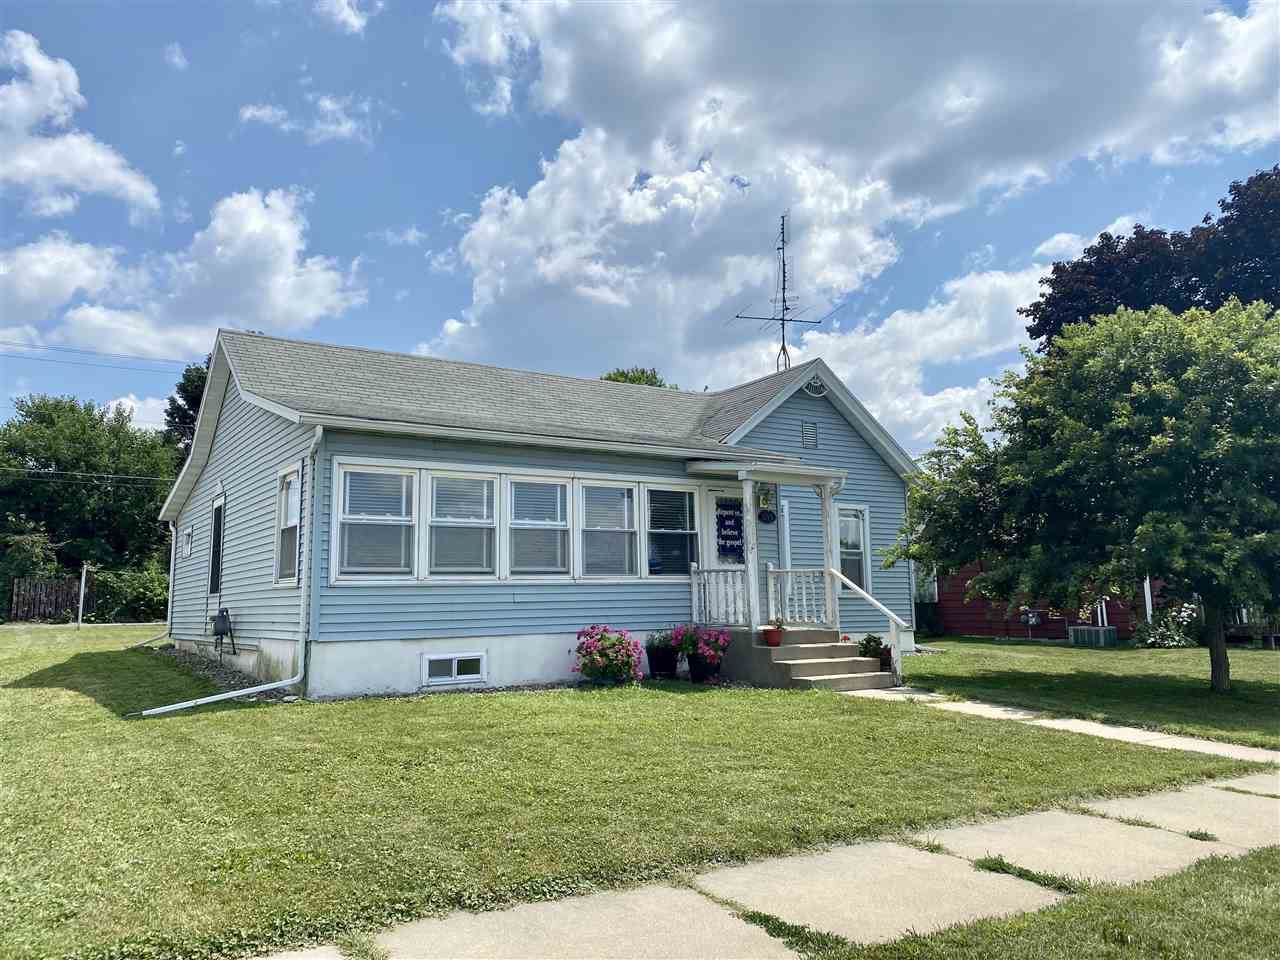 1018 29th Ave, Monroe, WI 53566 - #: 1916374